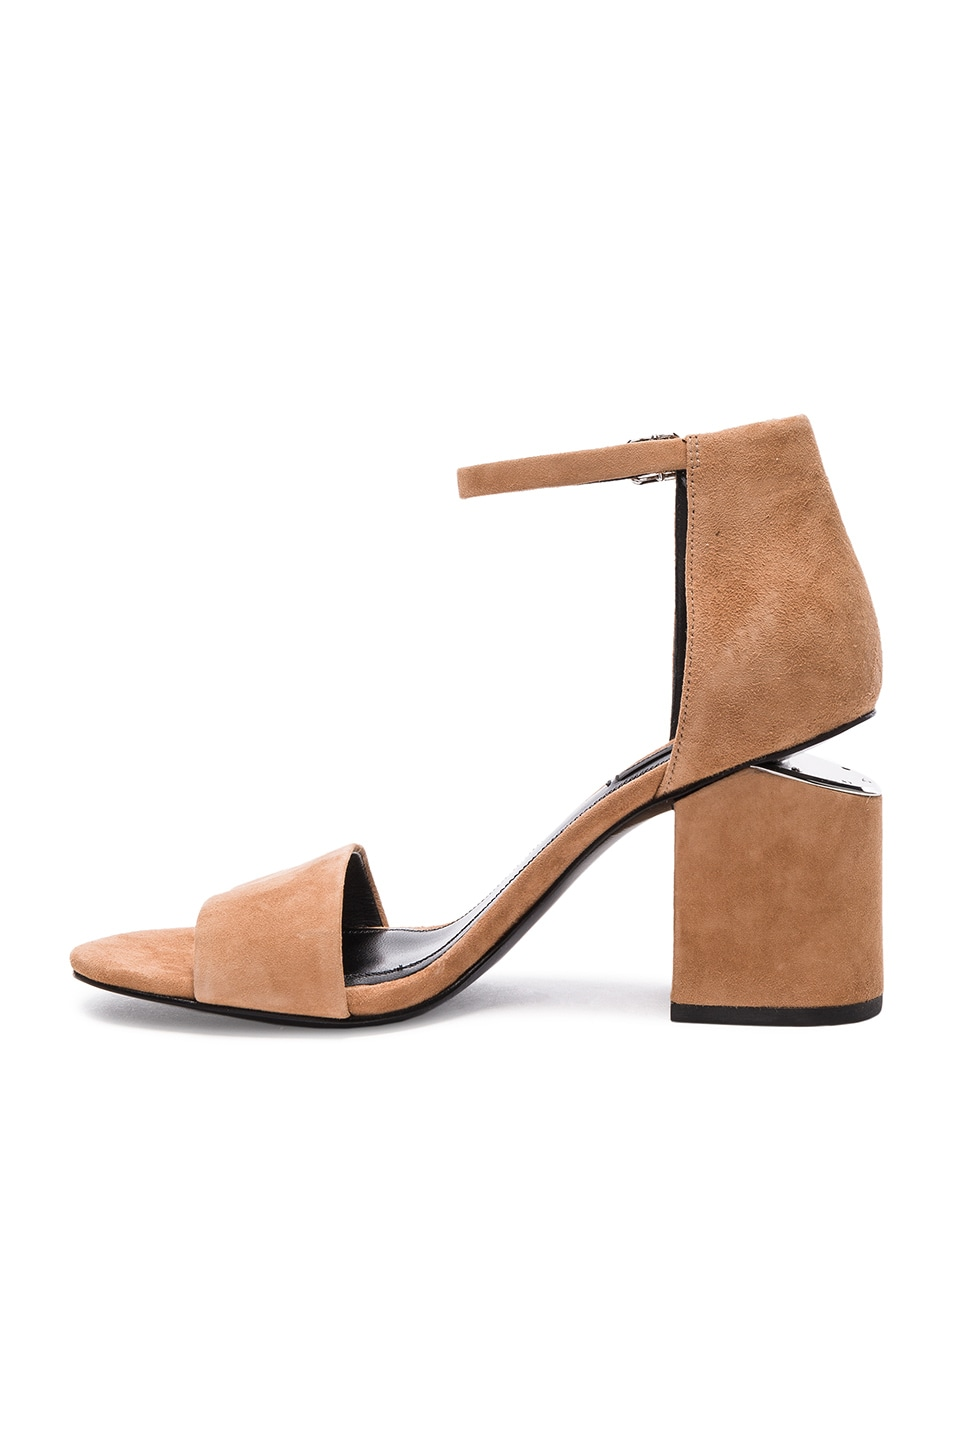 Image 5 of Alexander Wang Abby Suede Heels in Clay